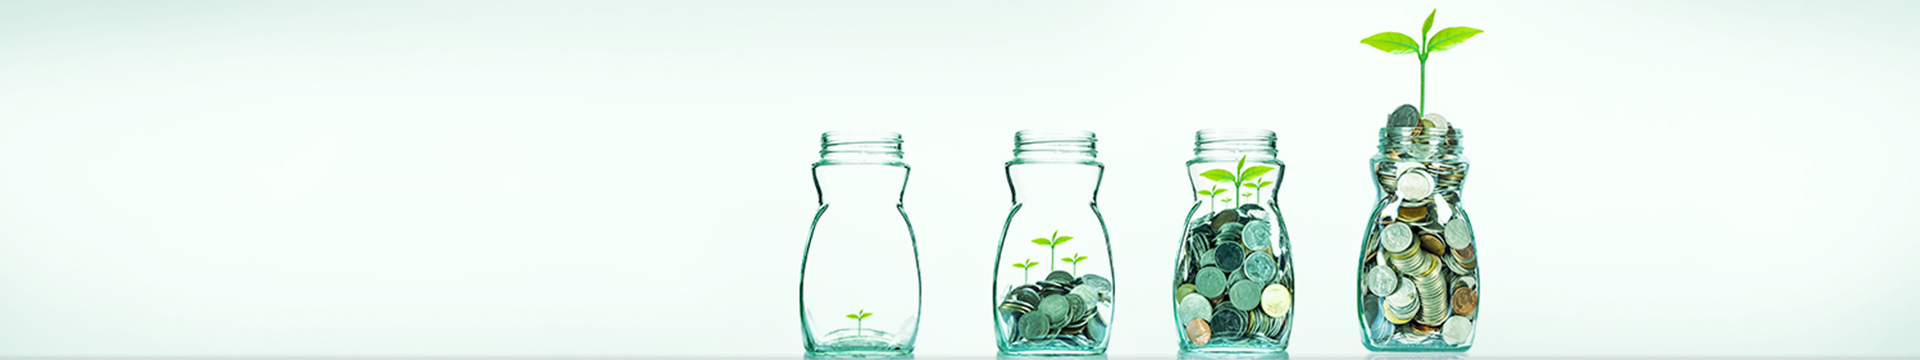 Basic Savings Account Banner